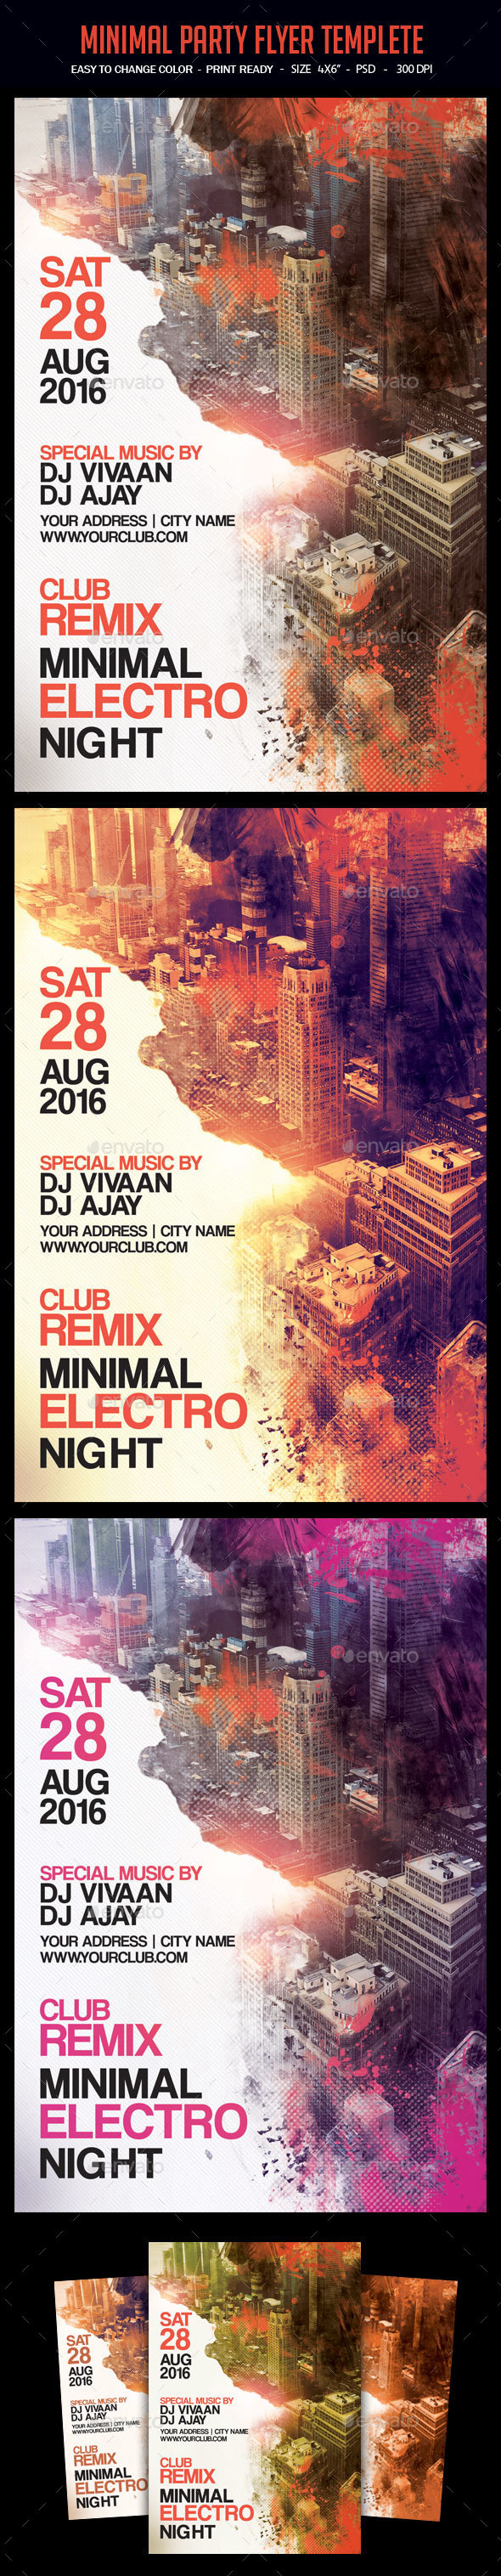 Minimal Party Flyer Templete - Clubs & Parties Events